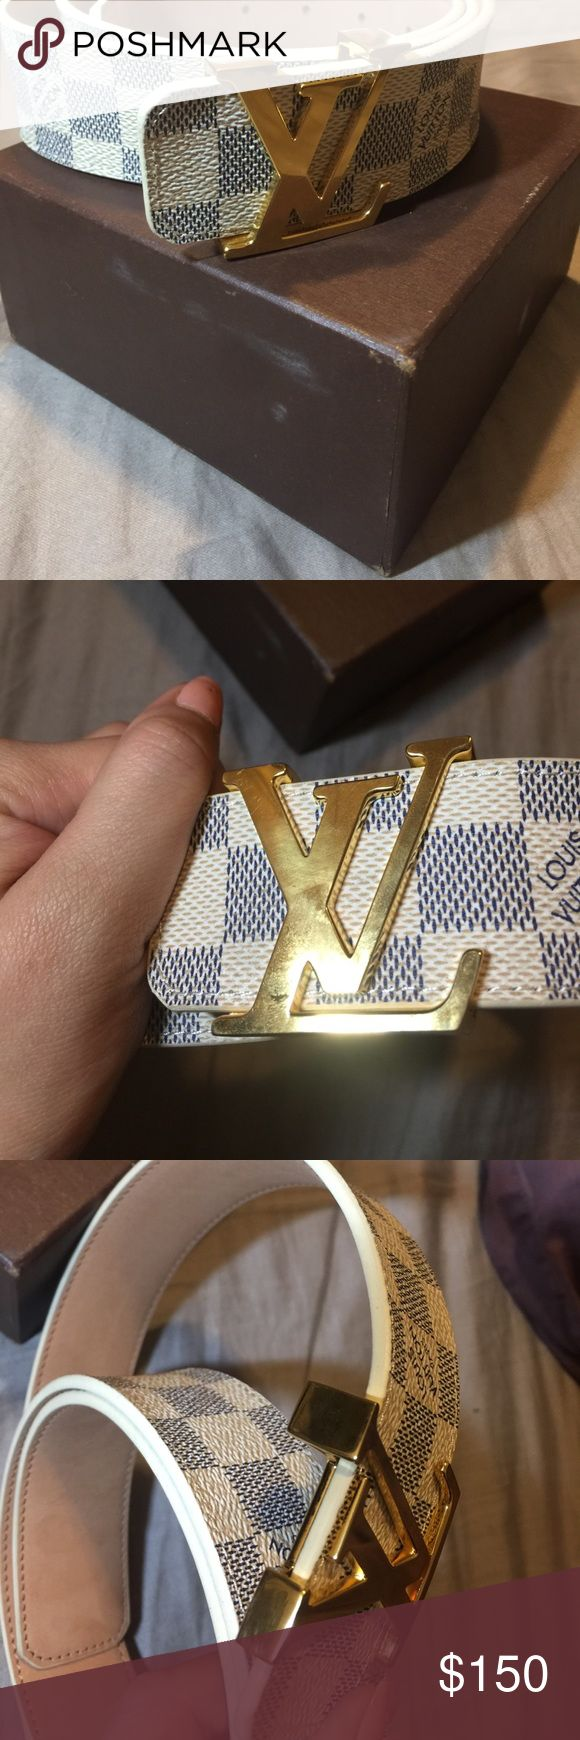 Louis vuitton damier belt. Louis vuitton damier print styled belt. With LV gold buckle. Comes as is with only box. There is no damage to the belt or buckle but slight scratches on box. Sizing is pictured. NOT SURE IF IT IS AUTHENTIC OR HIGH QUALITY REPLICA- so your steal if it is real. Sold as is. Louis Vuitton Accessories Belts